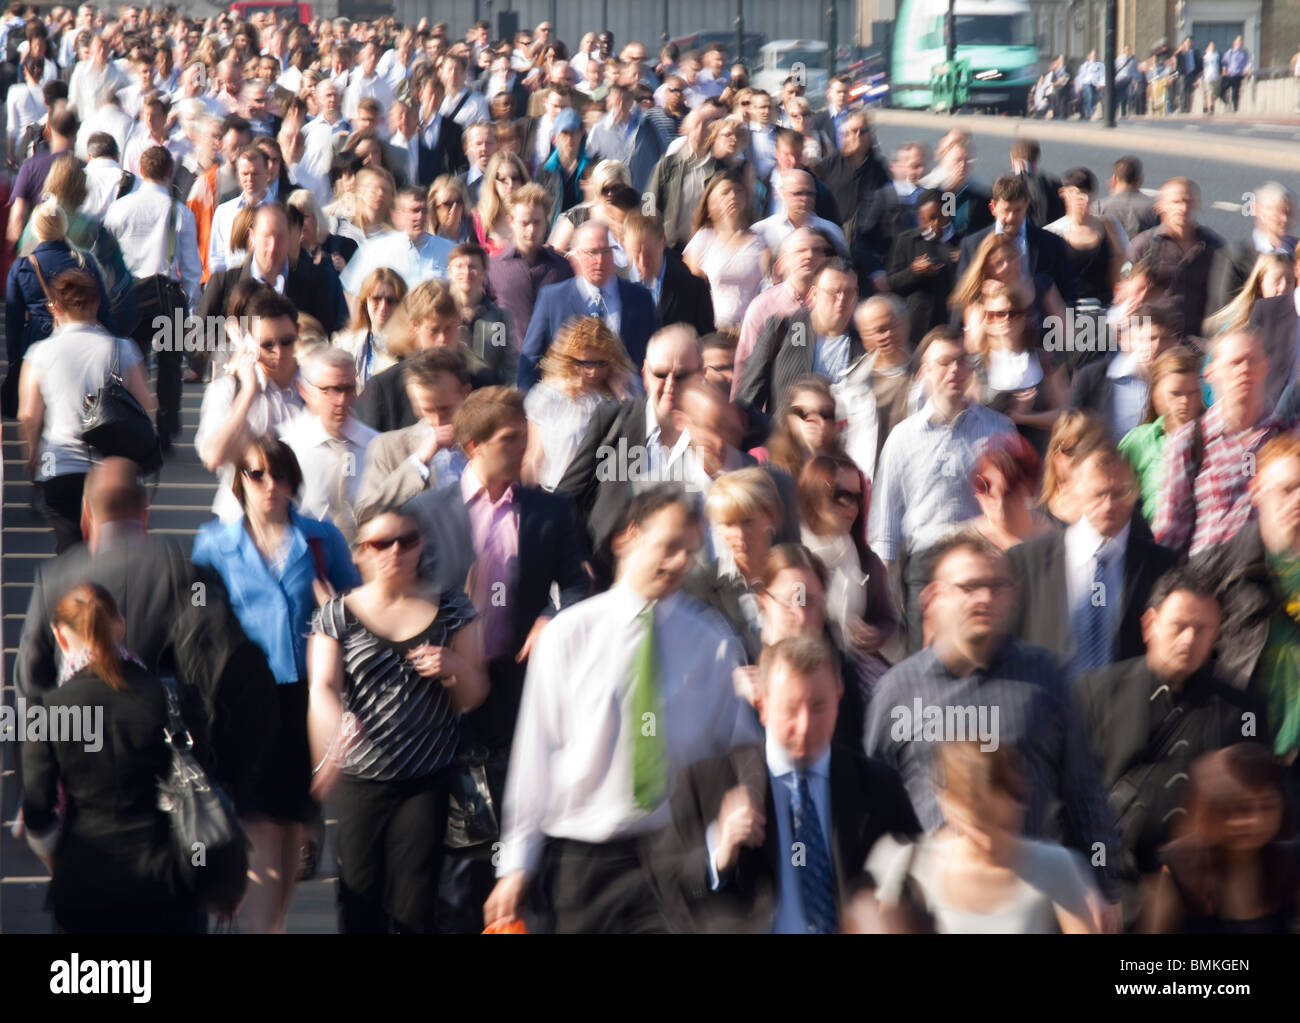 Commuters on London Bridge during rush hour - Stock Image